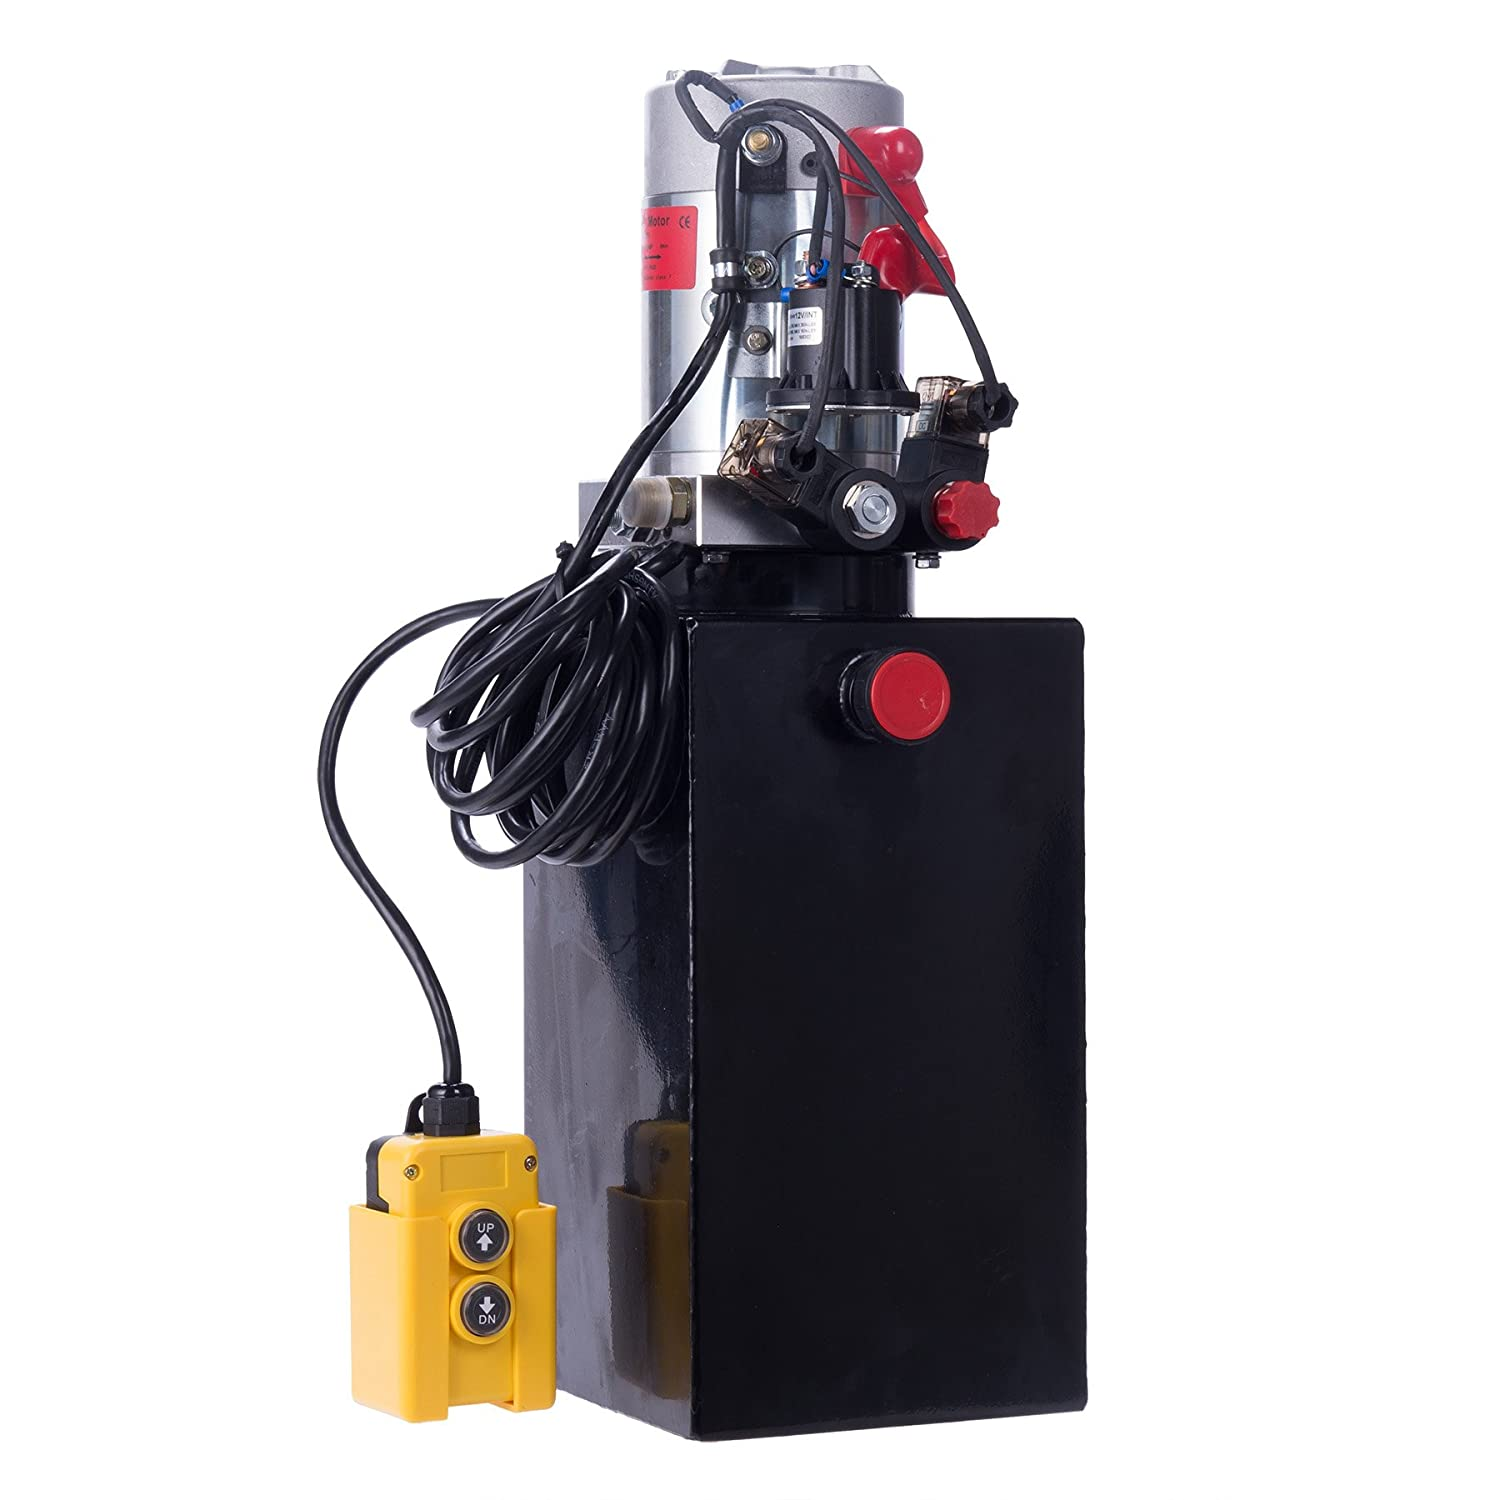 3200PSI Hydraulic Power Unit with Control Remote to Lift Dump Trailer Tipper Trailer Gates Tow Trucks Car Haulers Wreckers CO-Z 12V Double Acting Hydraulic Pump with 10 Quart Reservoir